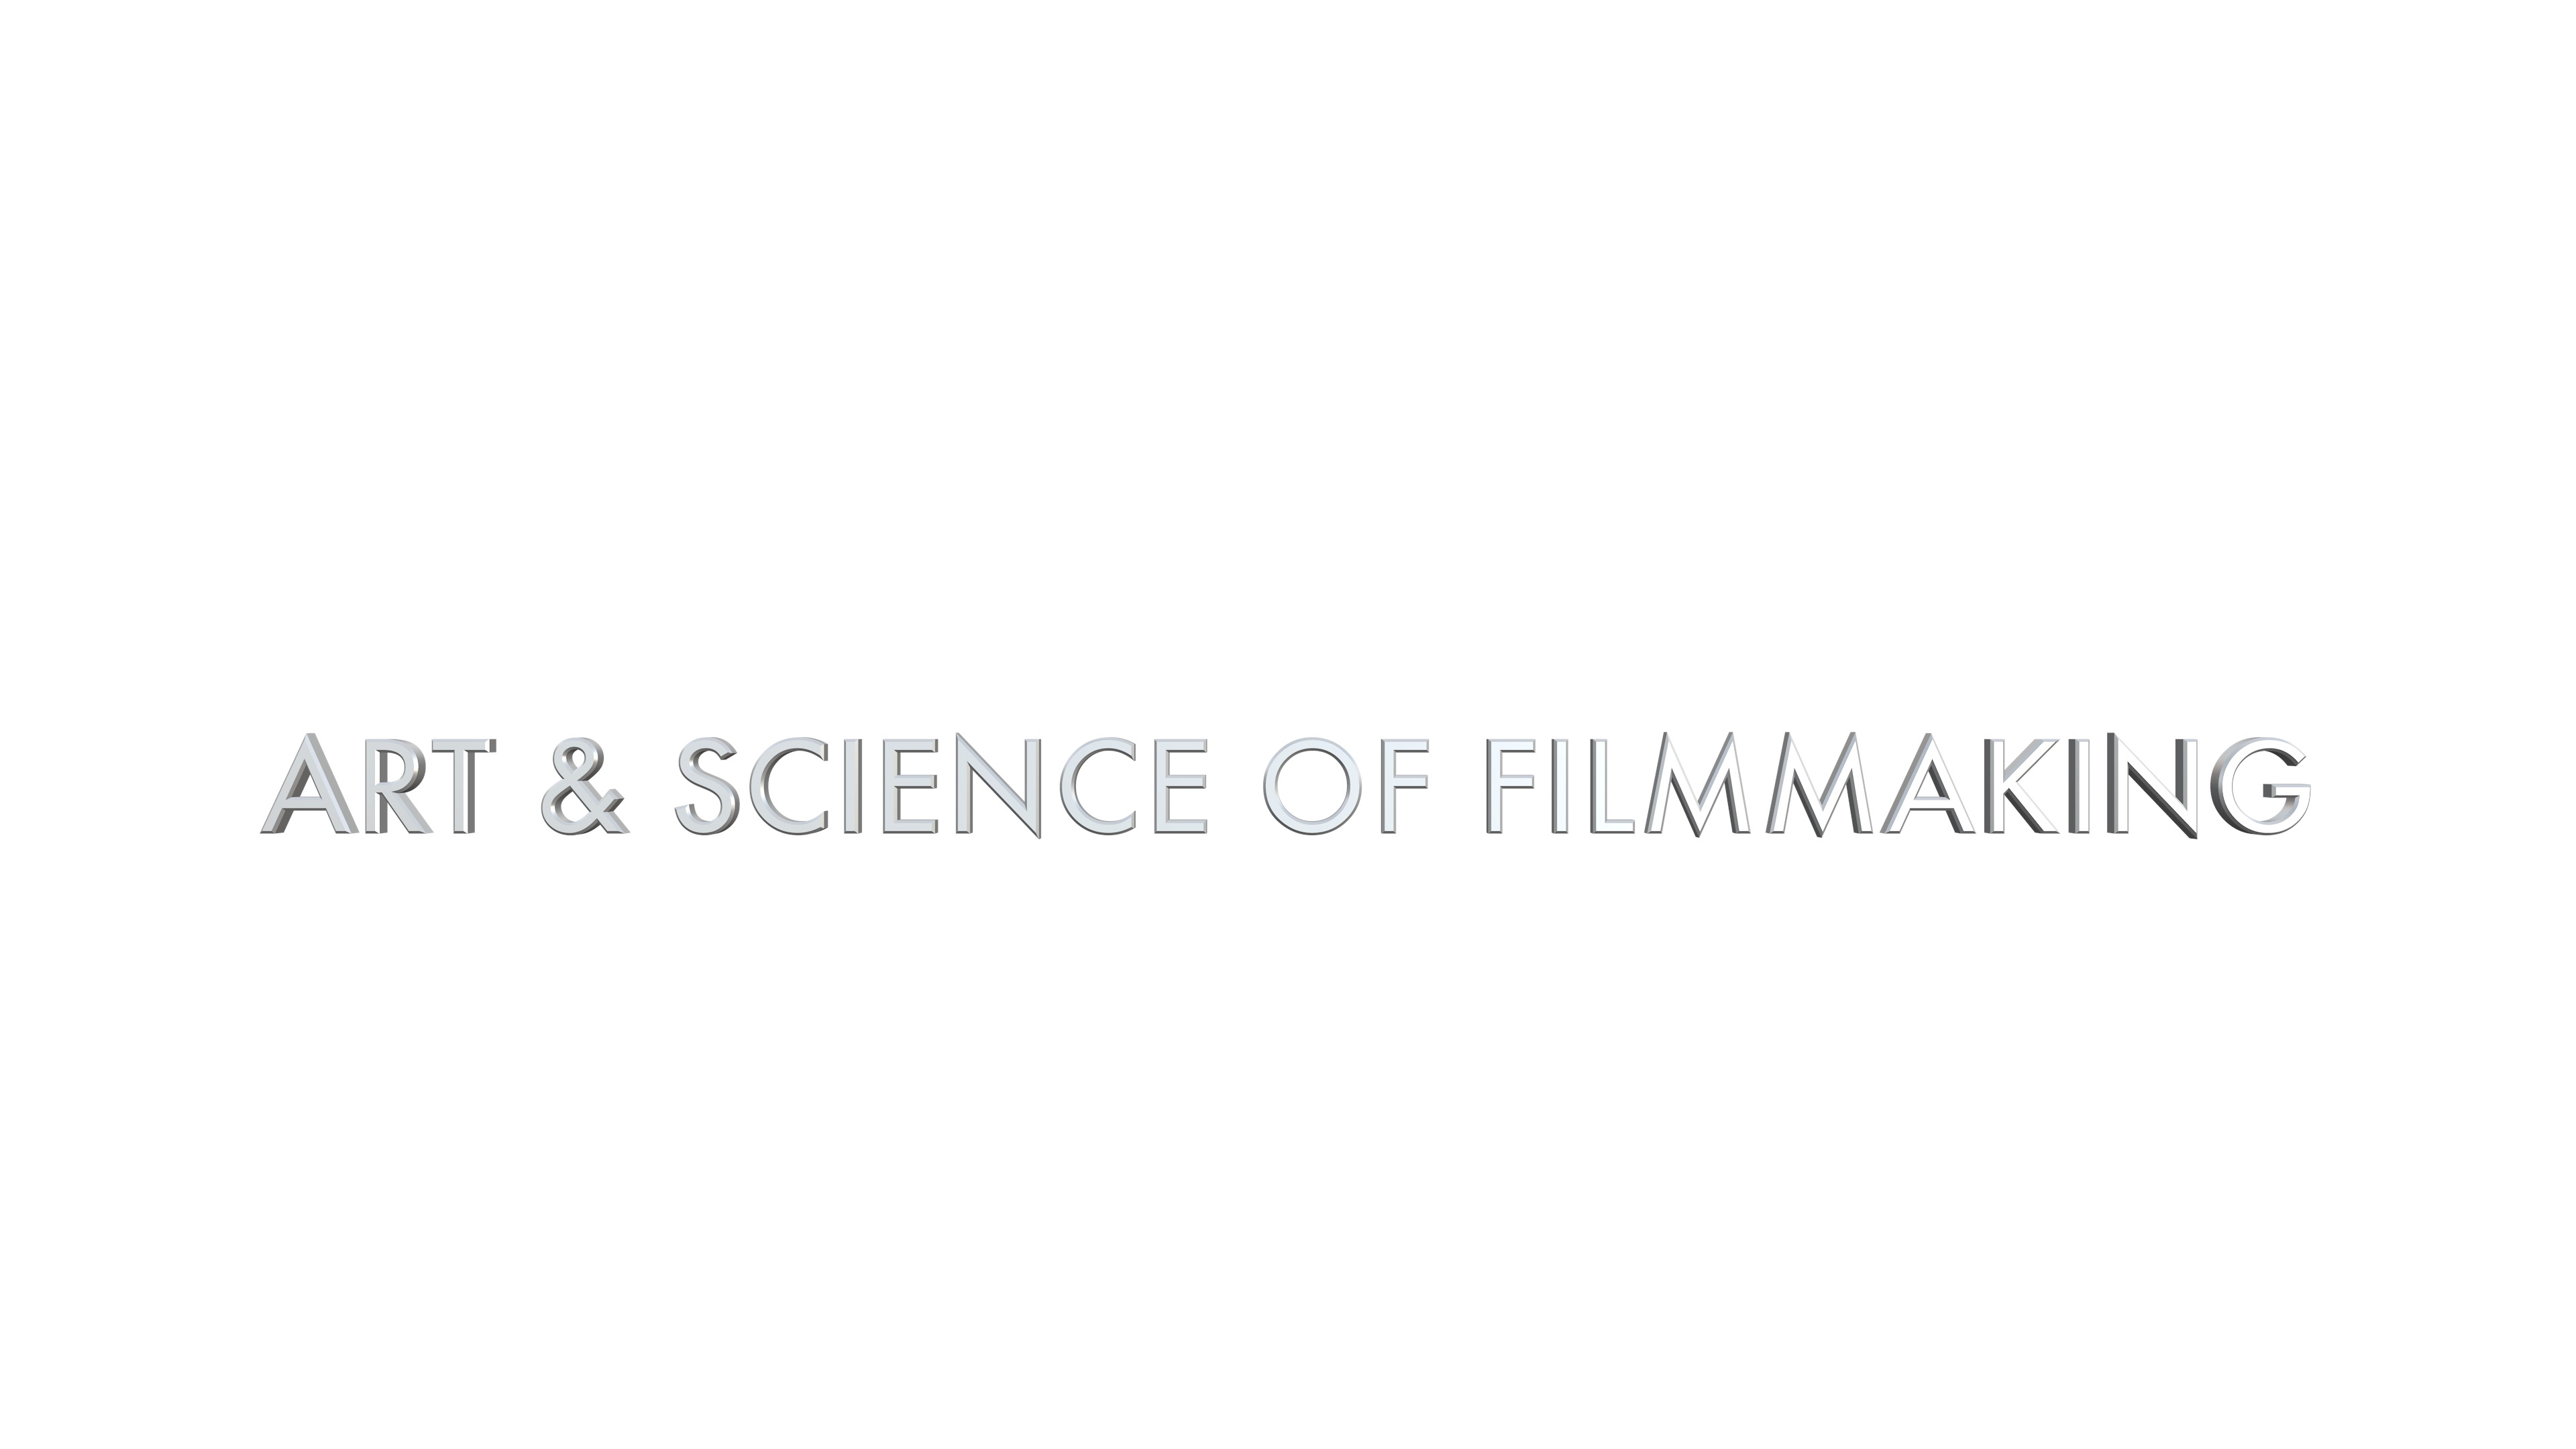 THE ART & SCIENCE OF FILMMAKING